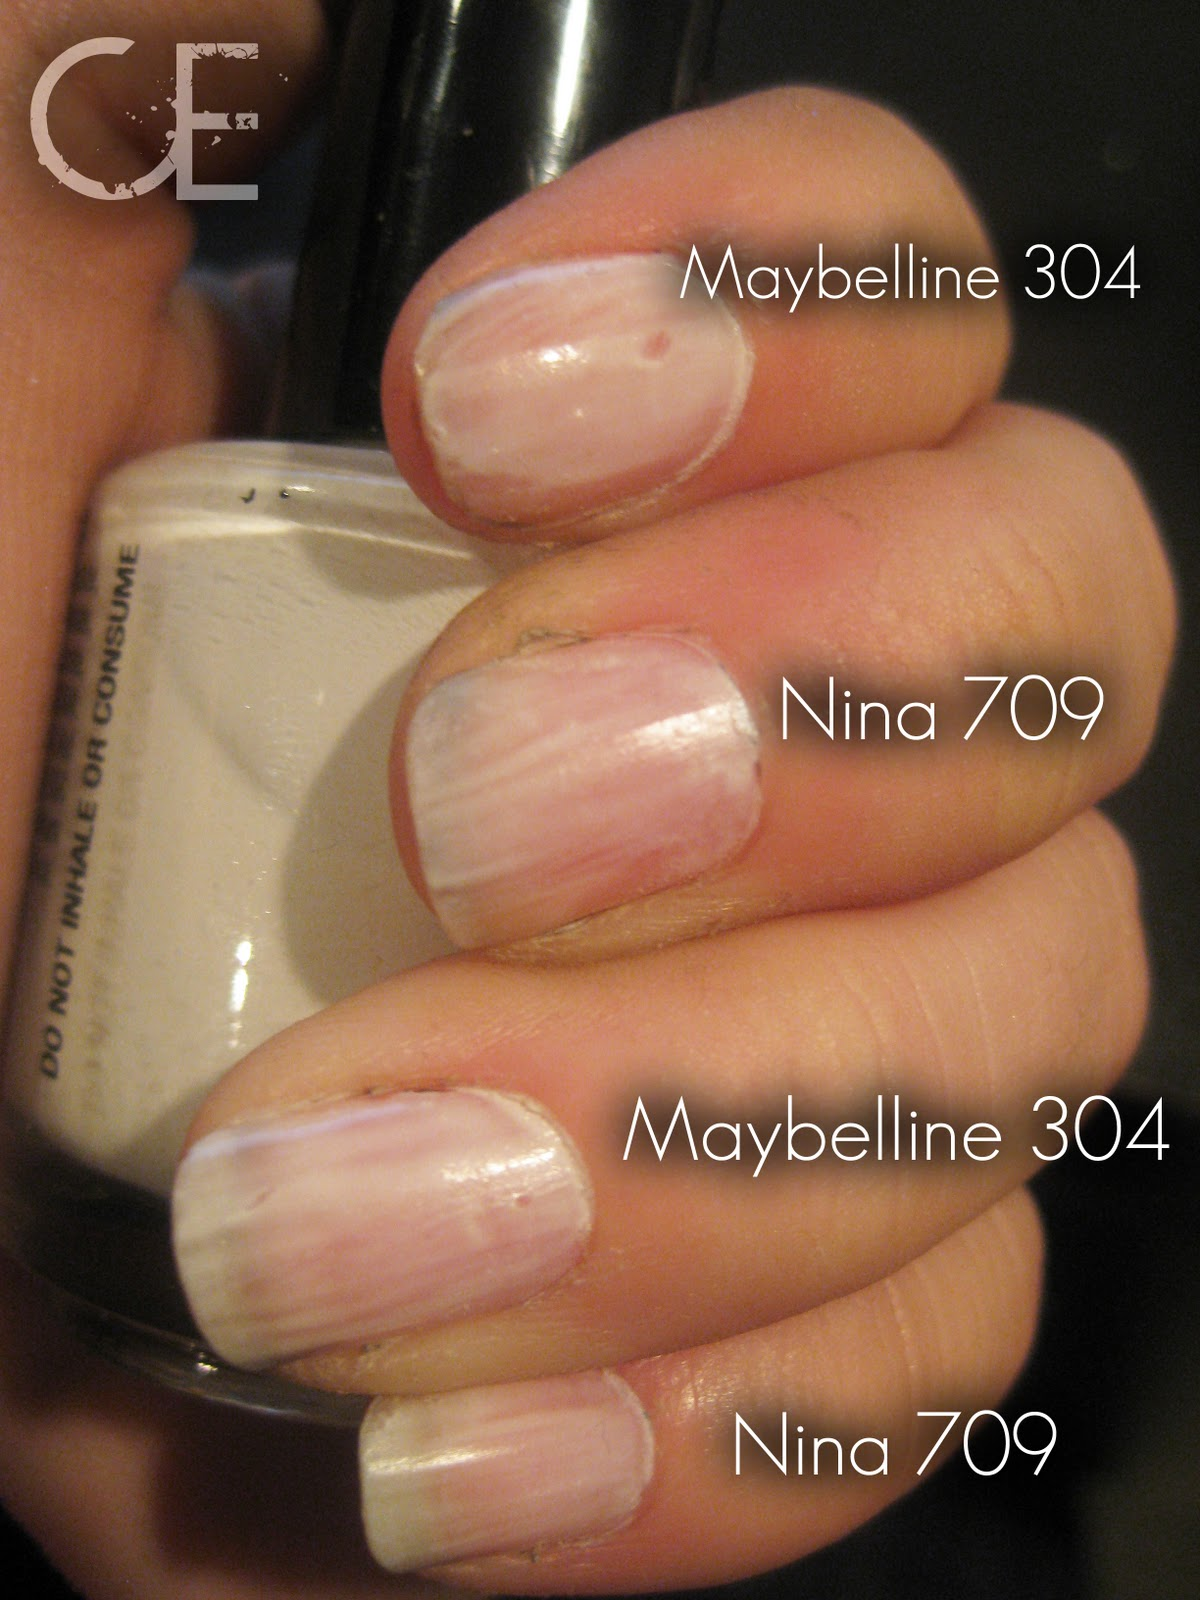 Makeup, etc!: Versus: White Nail Polish